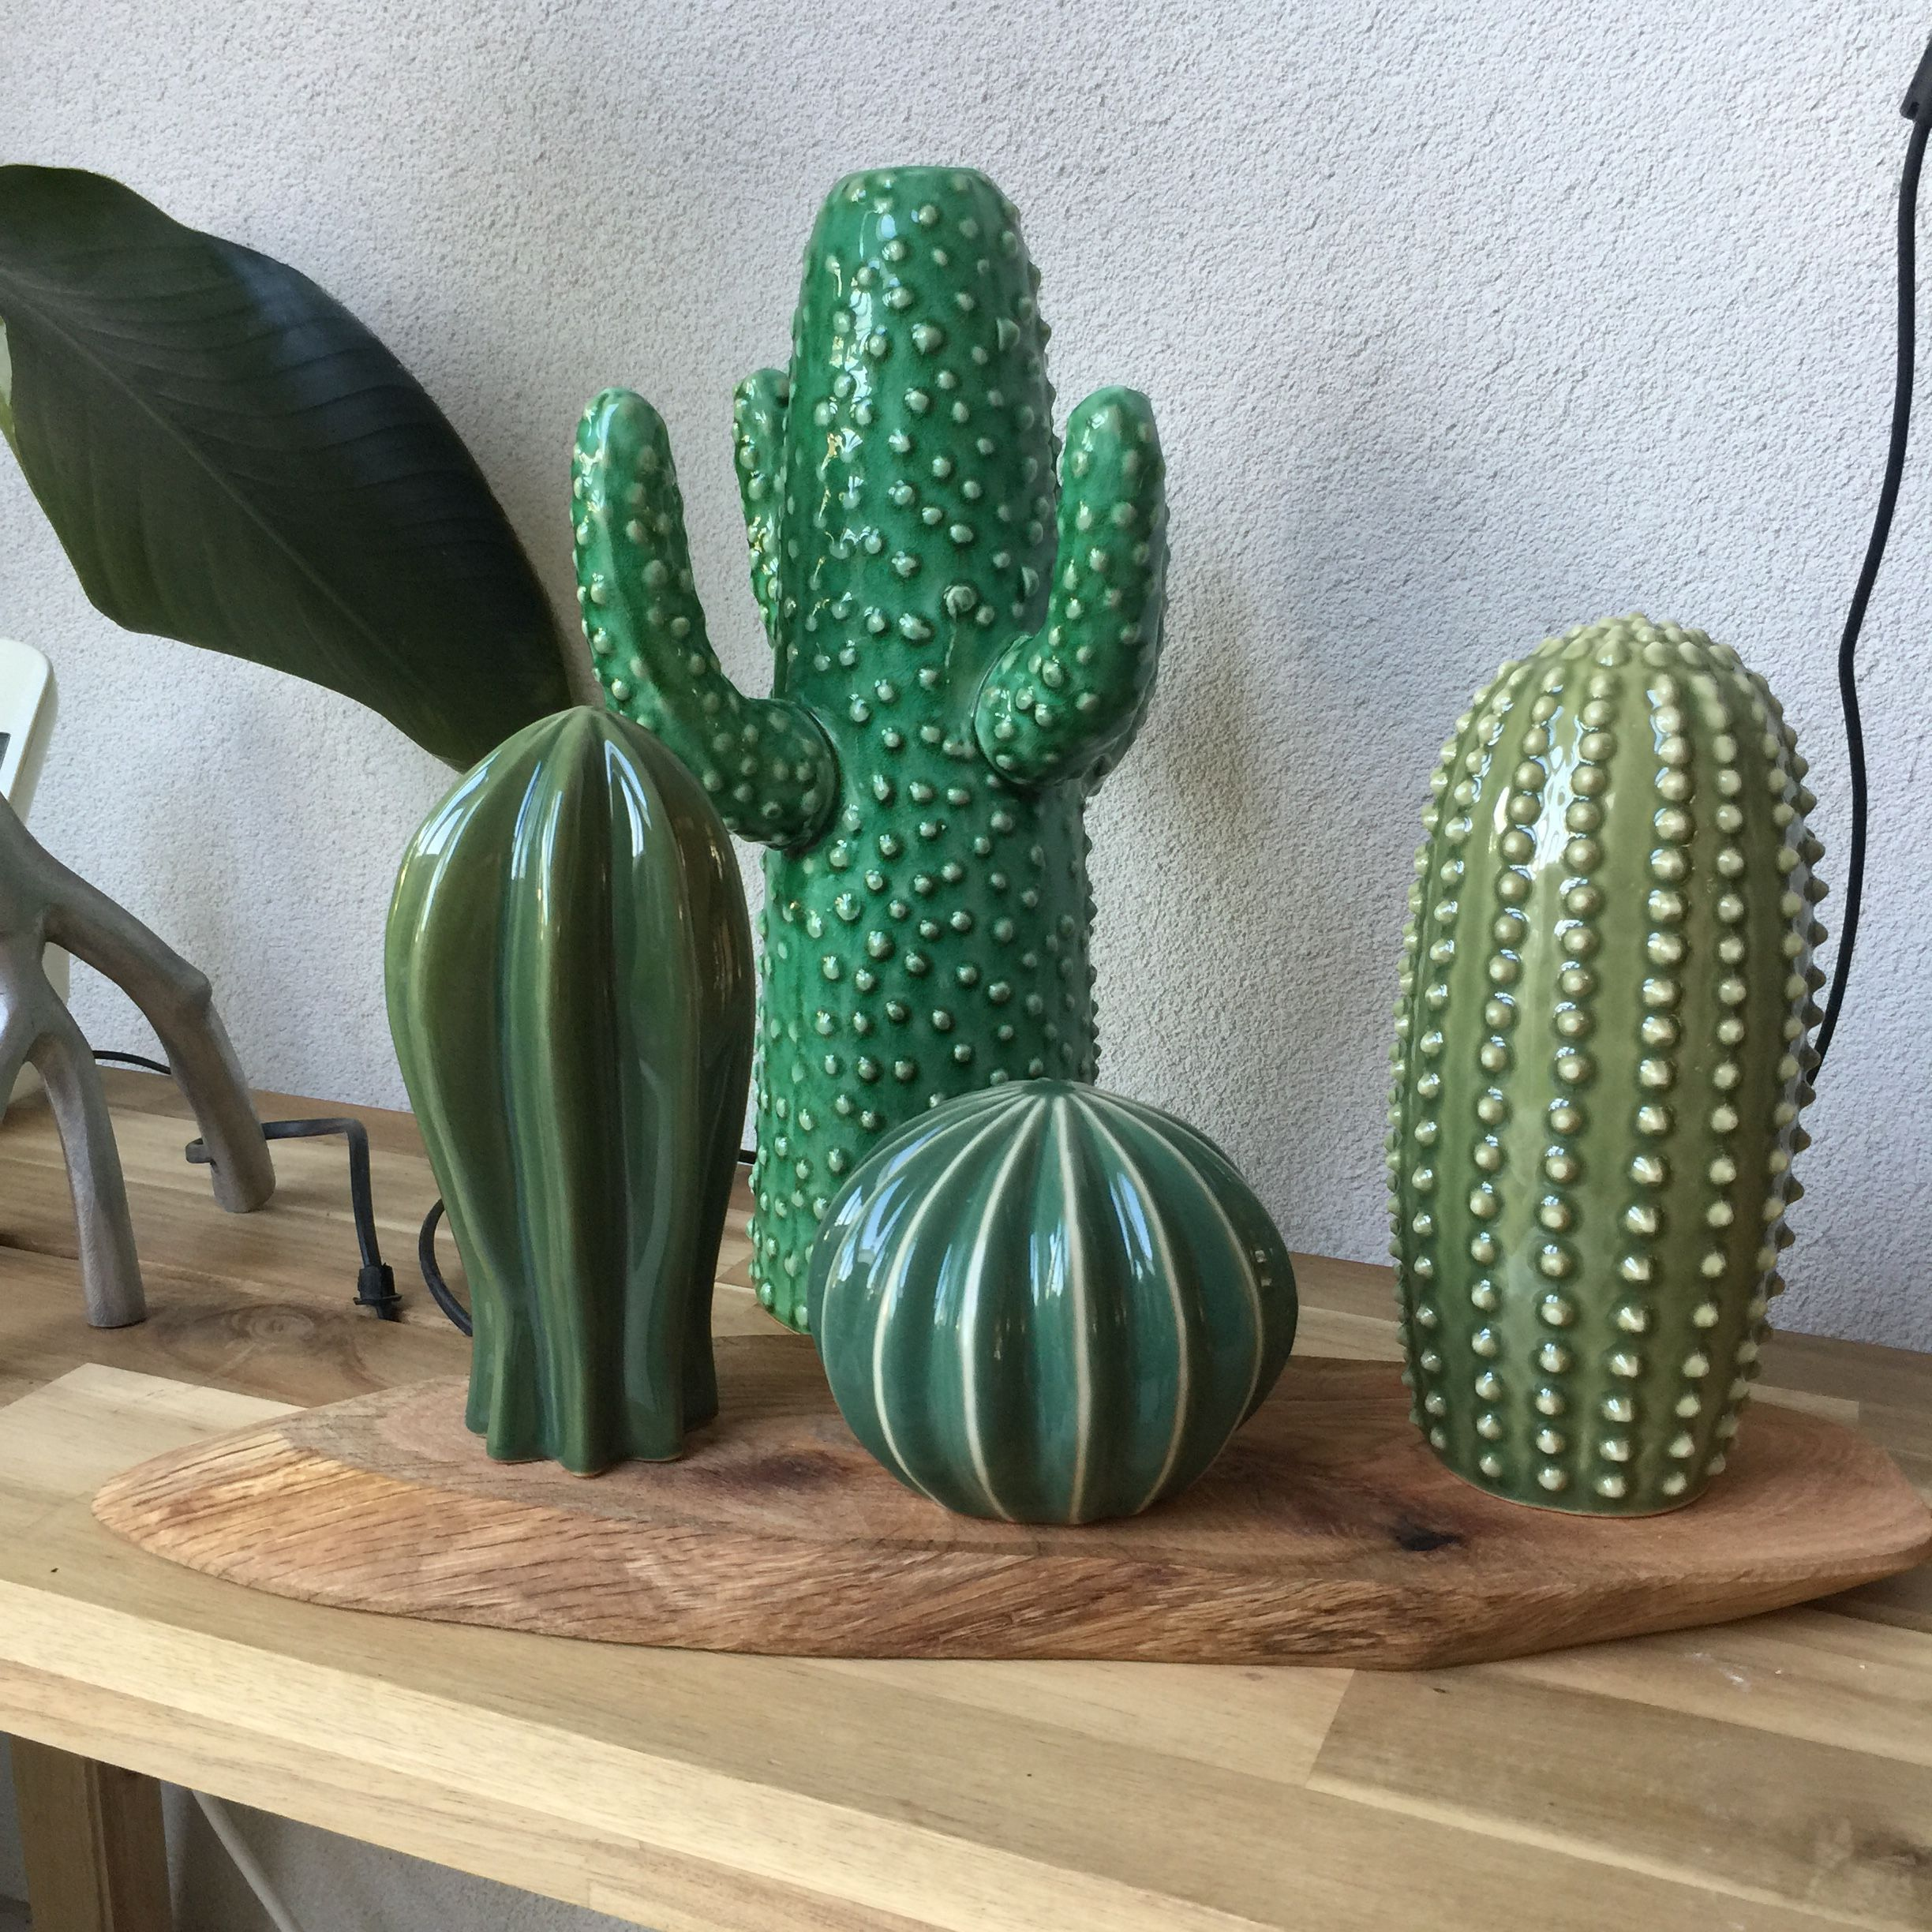 ceramic cactus ikea my beautiful home pinterest inredning dagis och lera. Black Bedroom Furniture Sets. Home Design Ideas